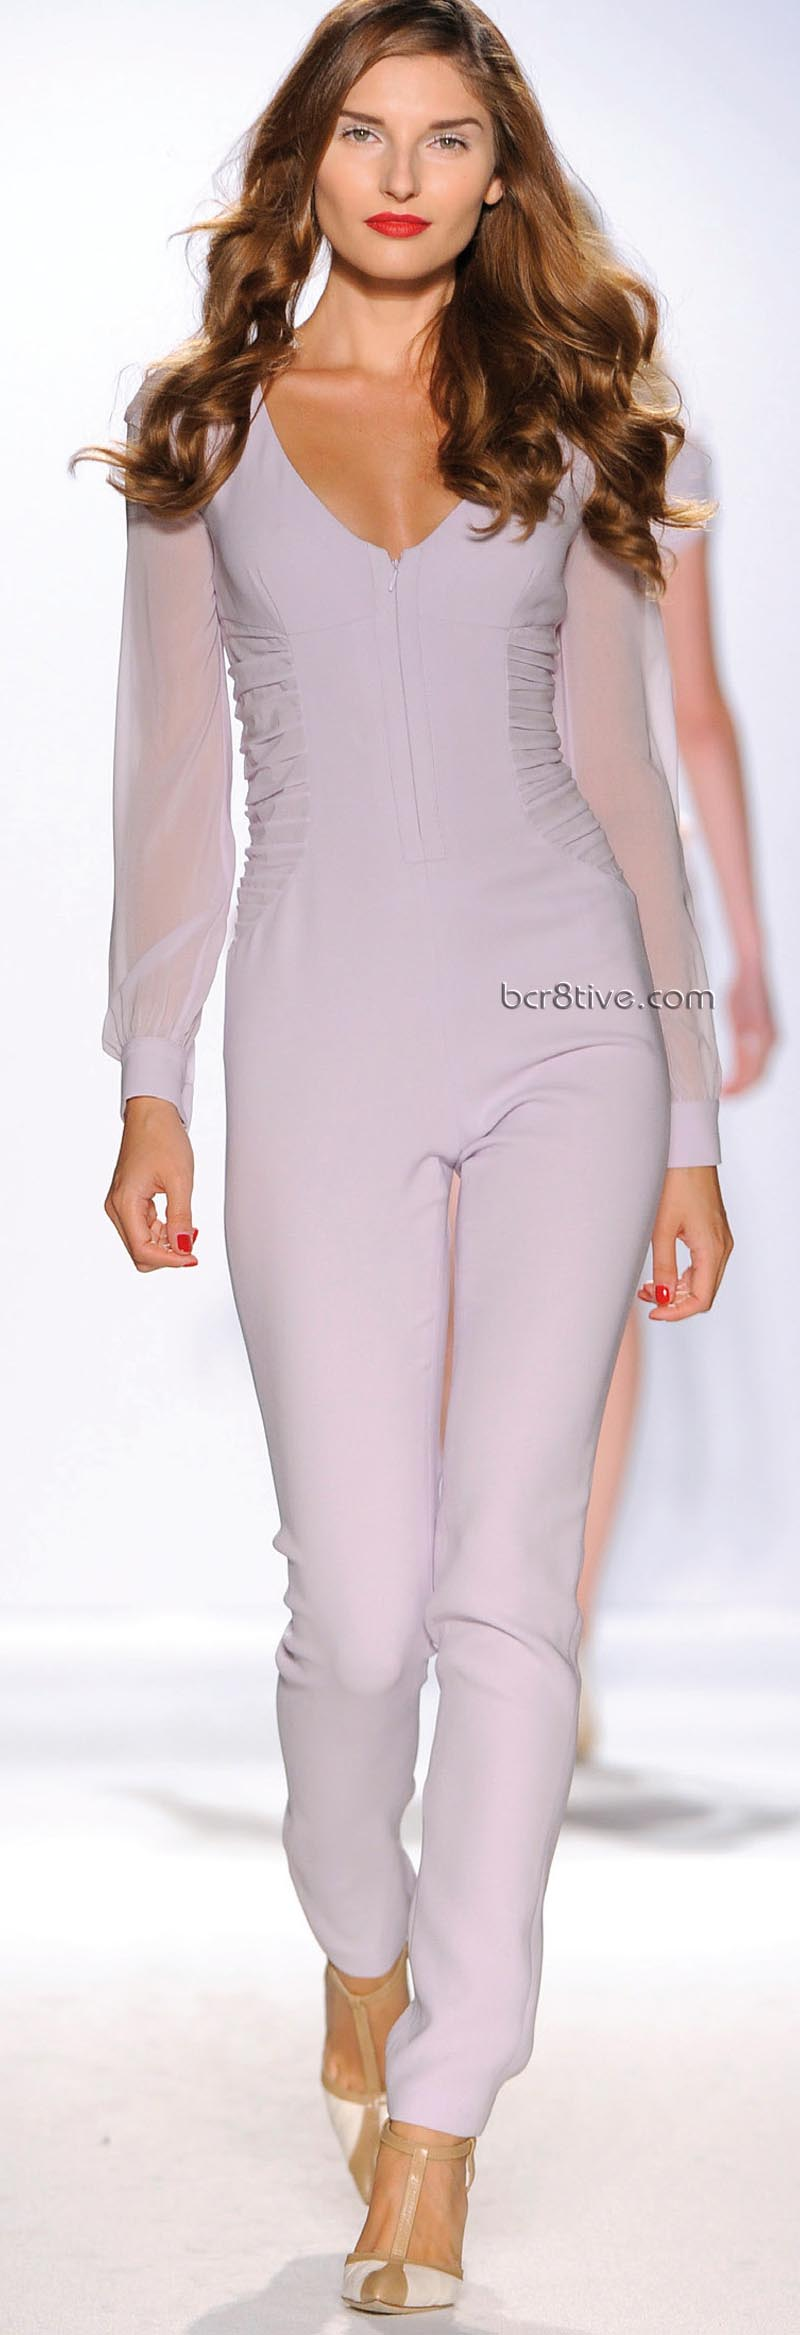 Gattinoni Spring Summer 2011 Ready to Wear